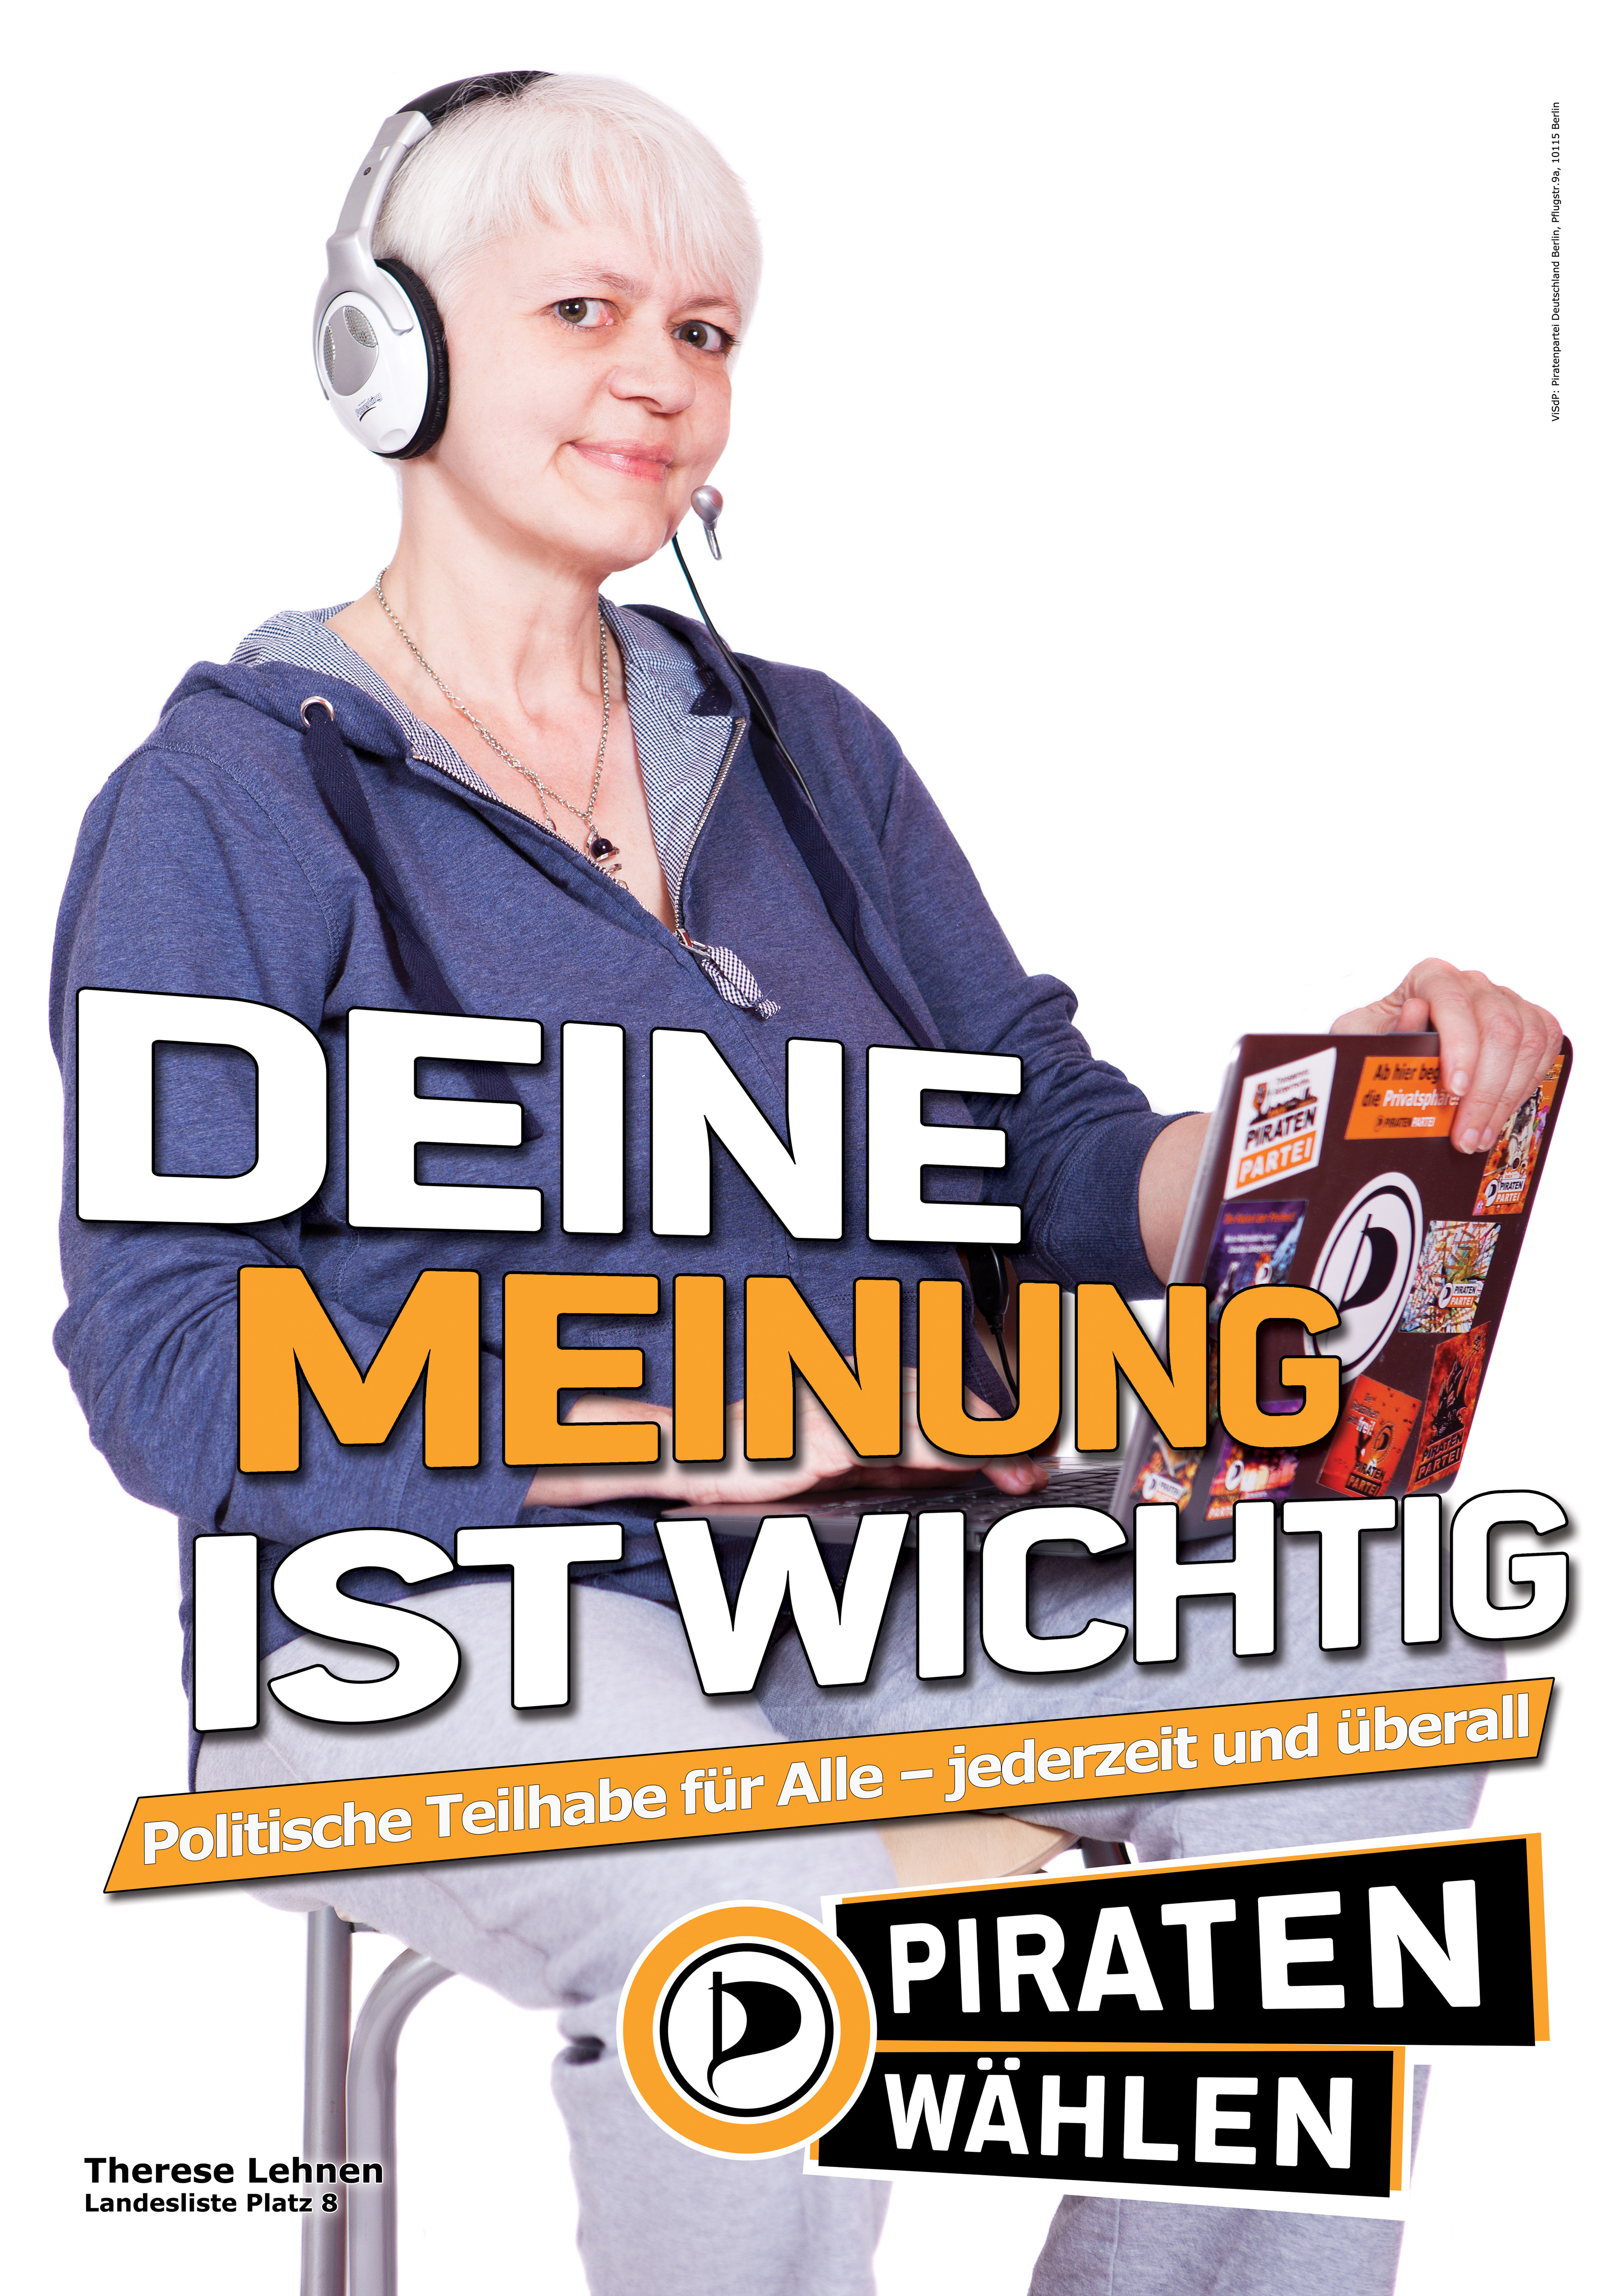 Piraten-Wahlplakat für mehr Partizipation. Via brunokramm.wordpress.com